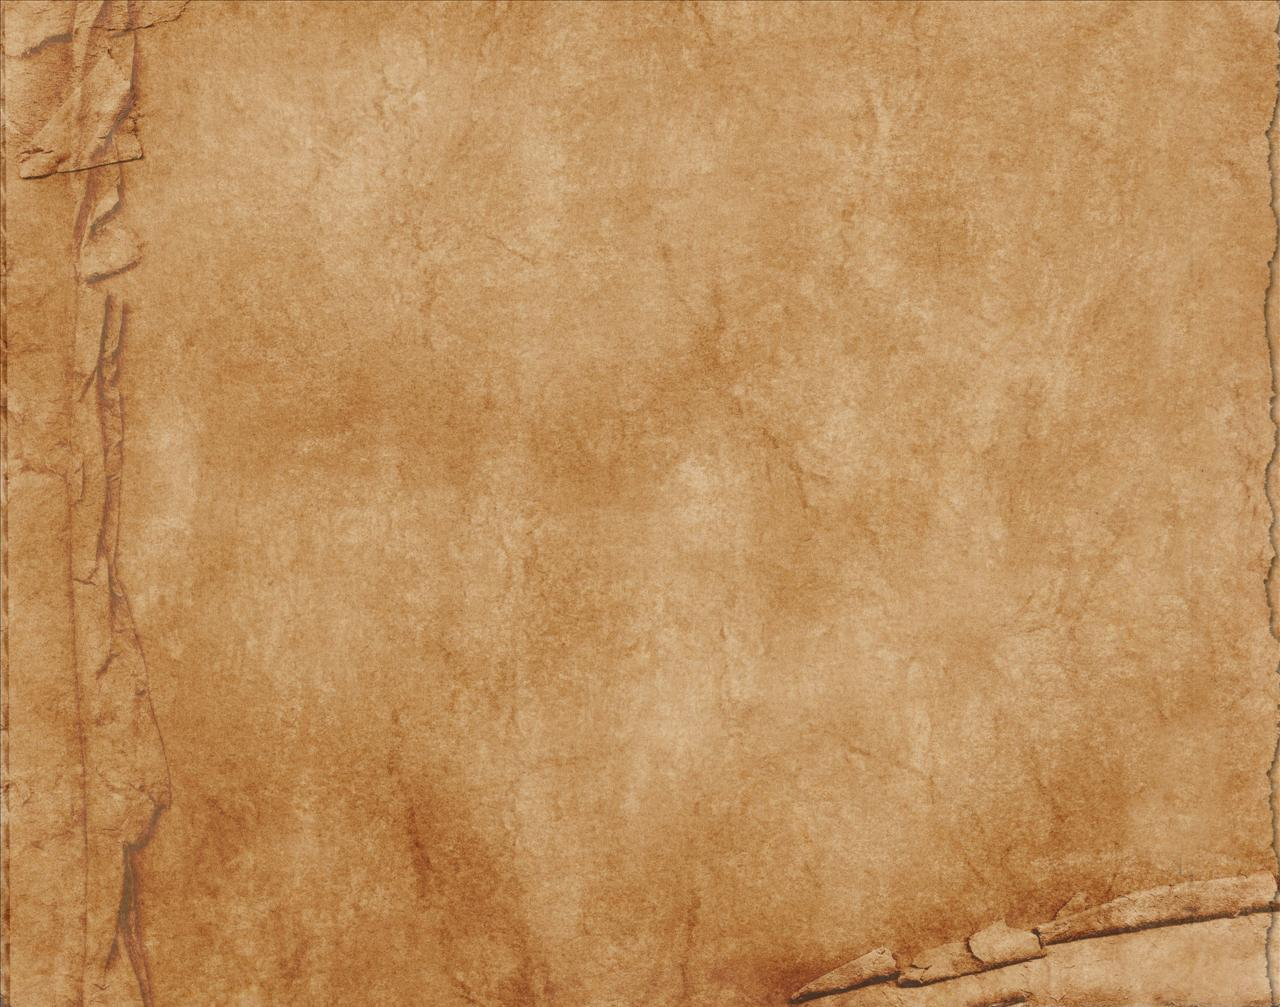 FREE BROWN VINTAGE WALLPAPER BACKGROUNDS 1280x1007